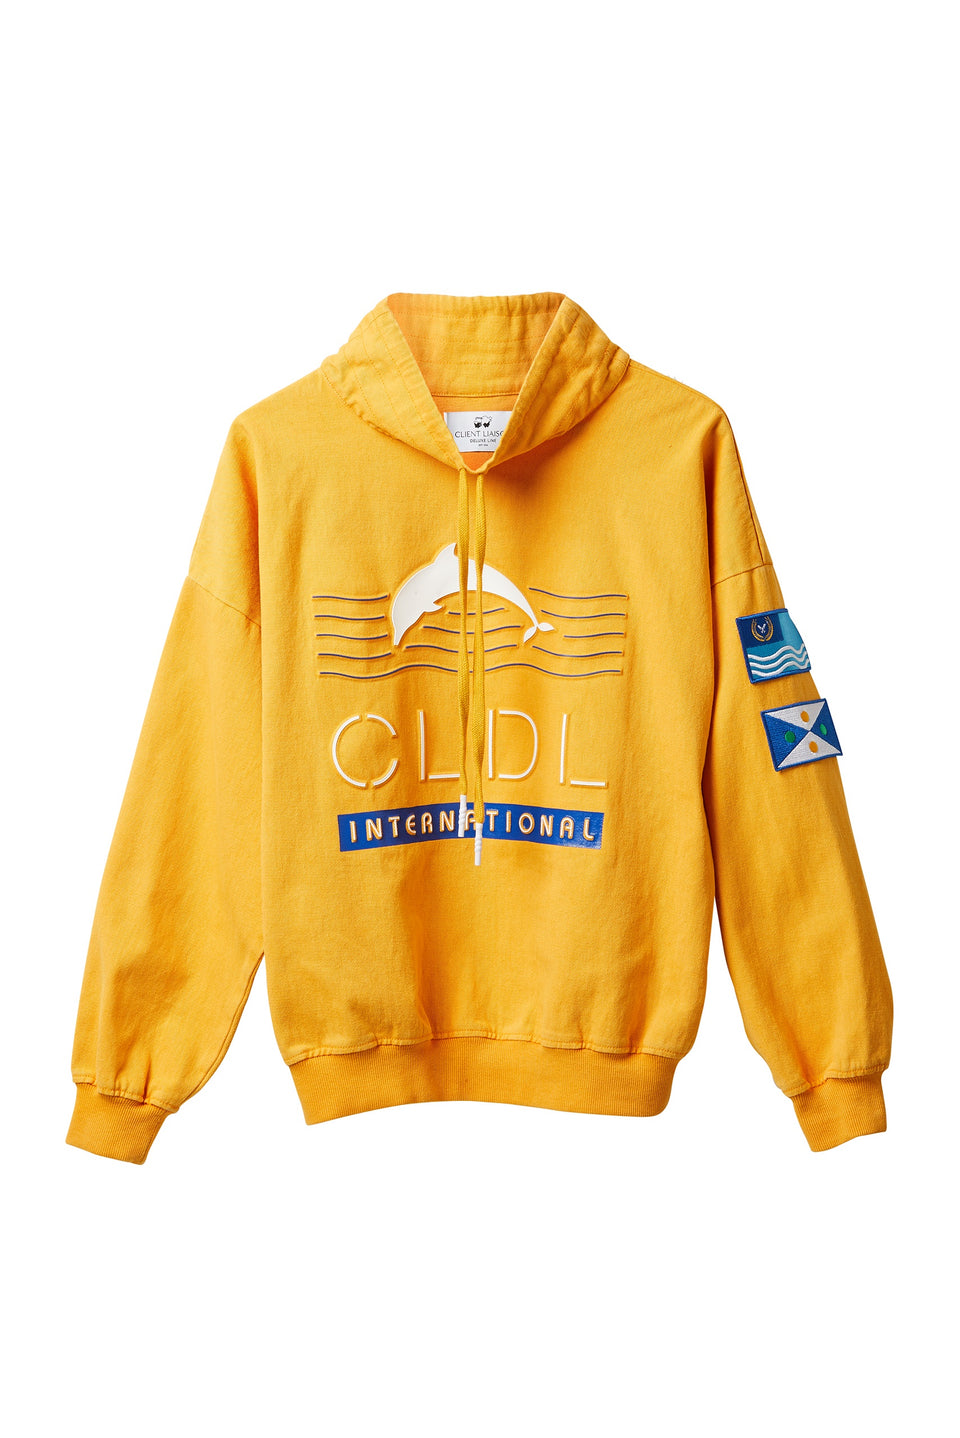 CLDL Fantasy High Leisure Pullover (CLDL-088)